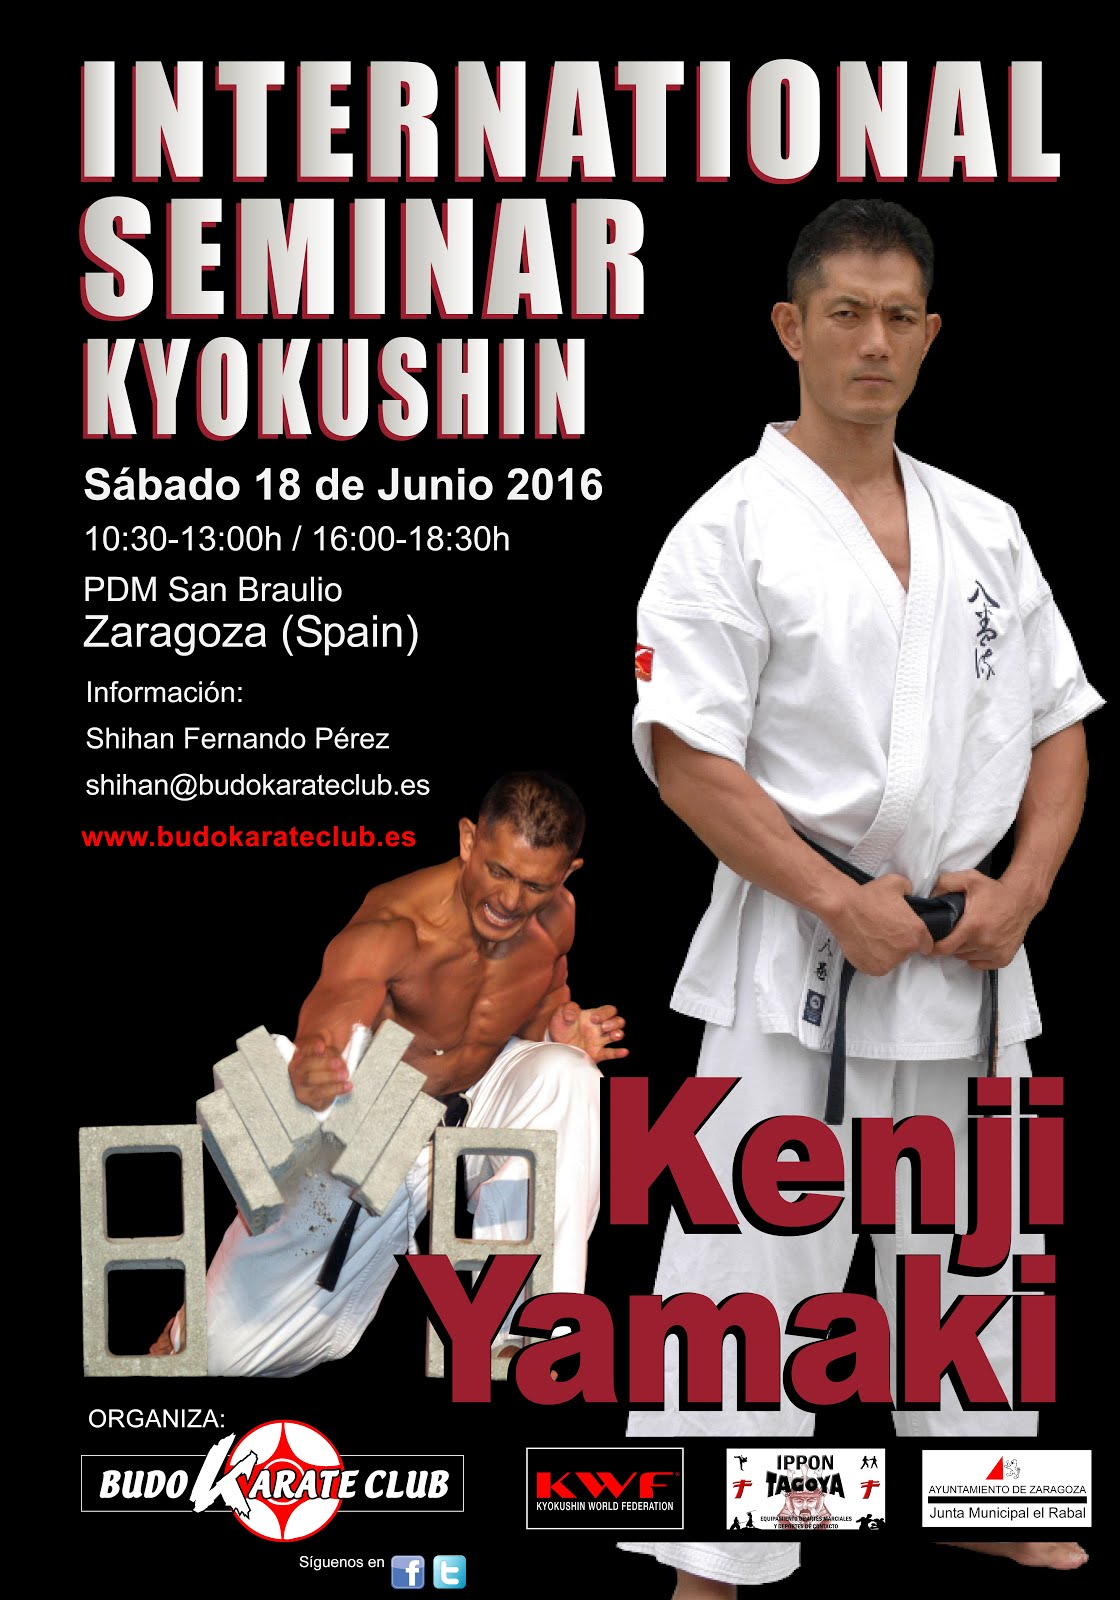 INTERNATIONAL SEMINAR KENJI YAMAKI